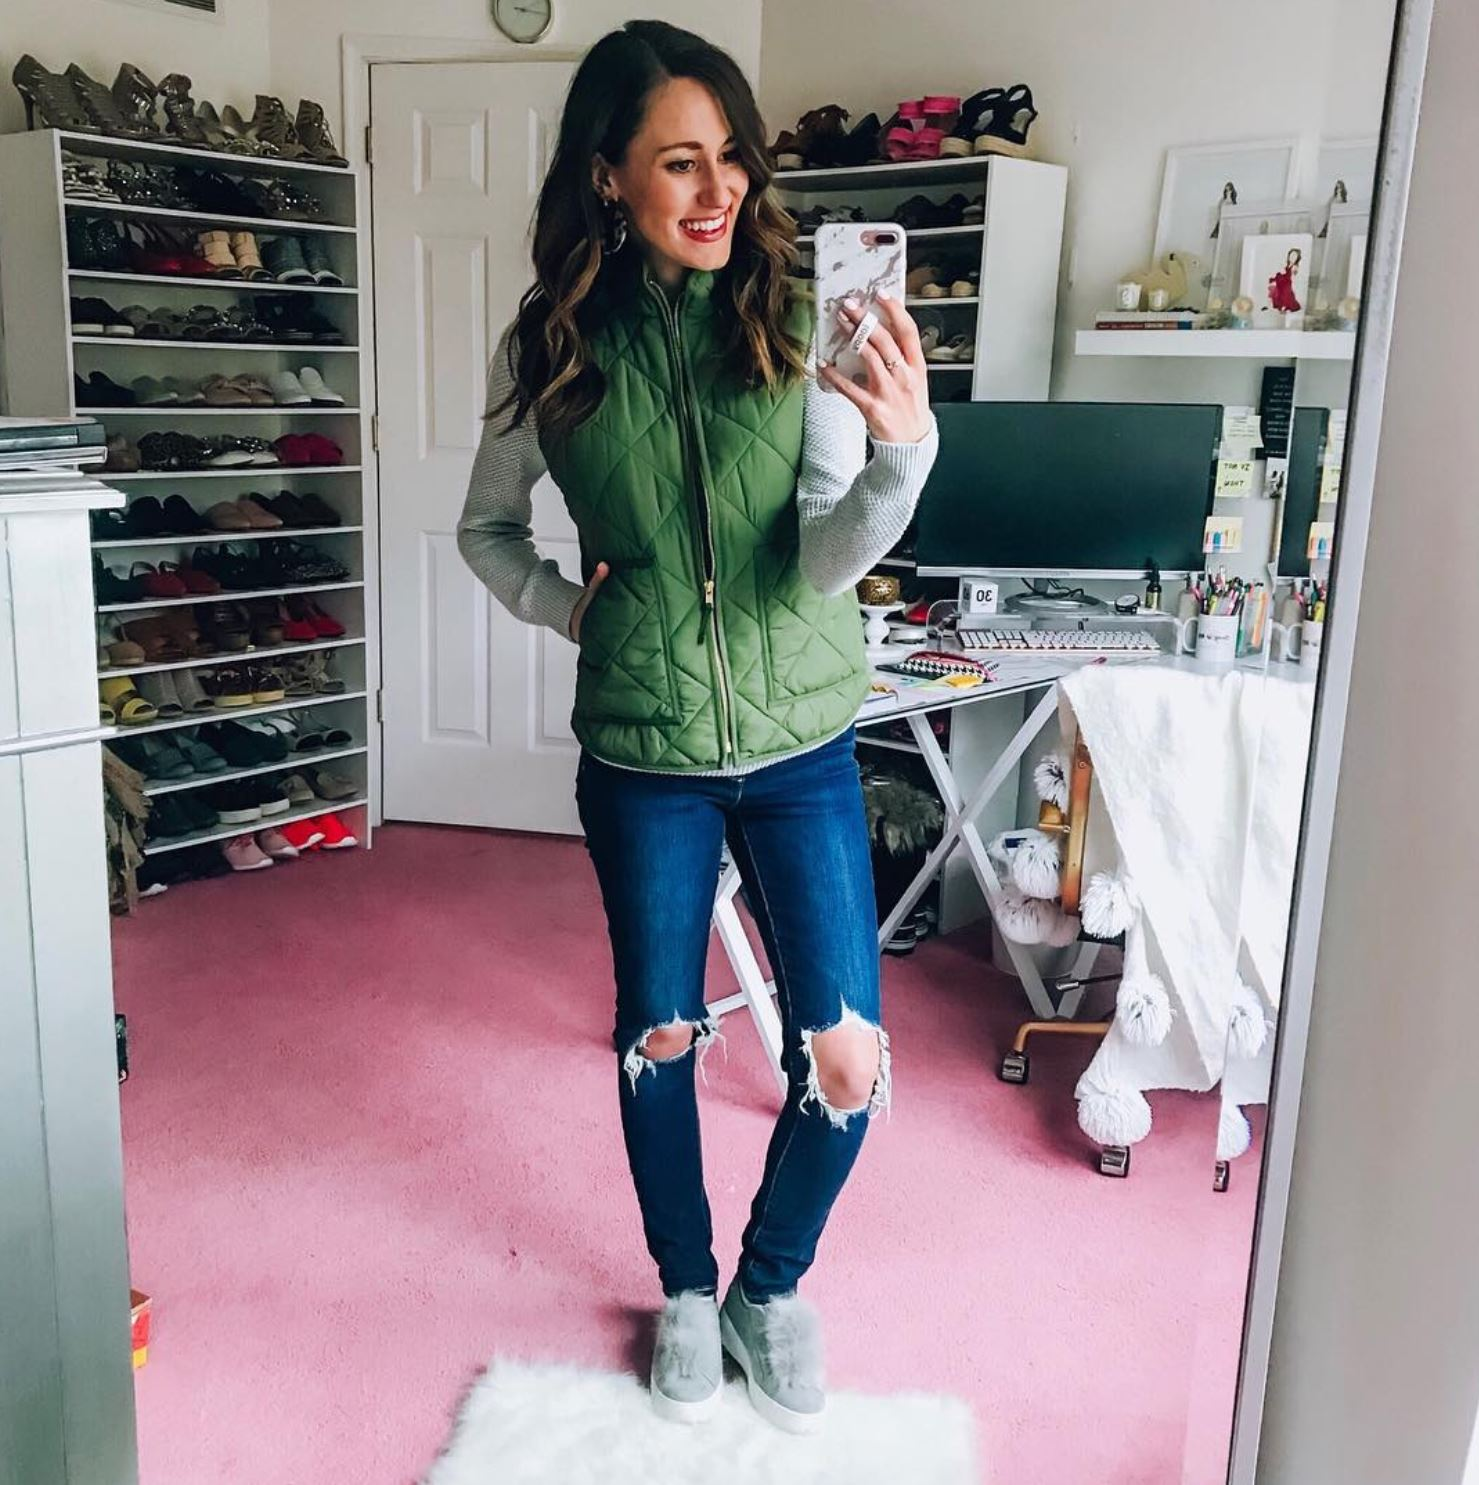 INSTAGRAM LATELY on Coming Up Roses - J. Crew Mercantile vest, levi's jeans